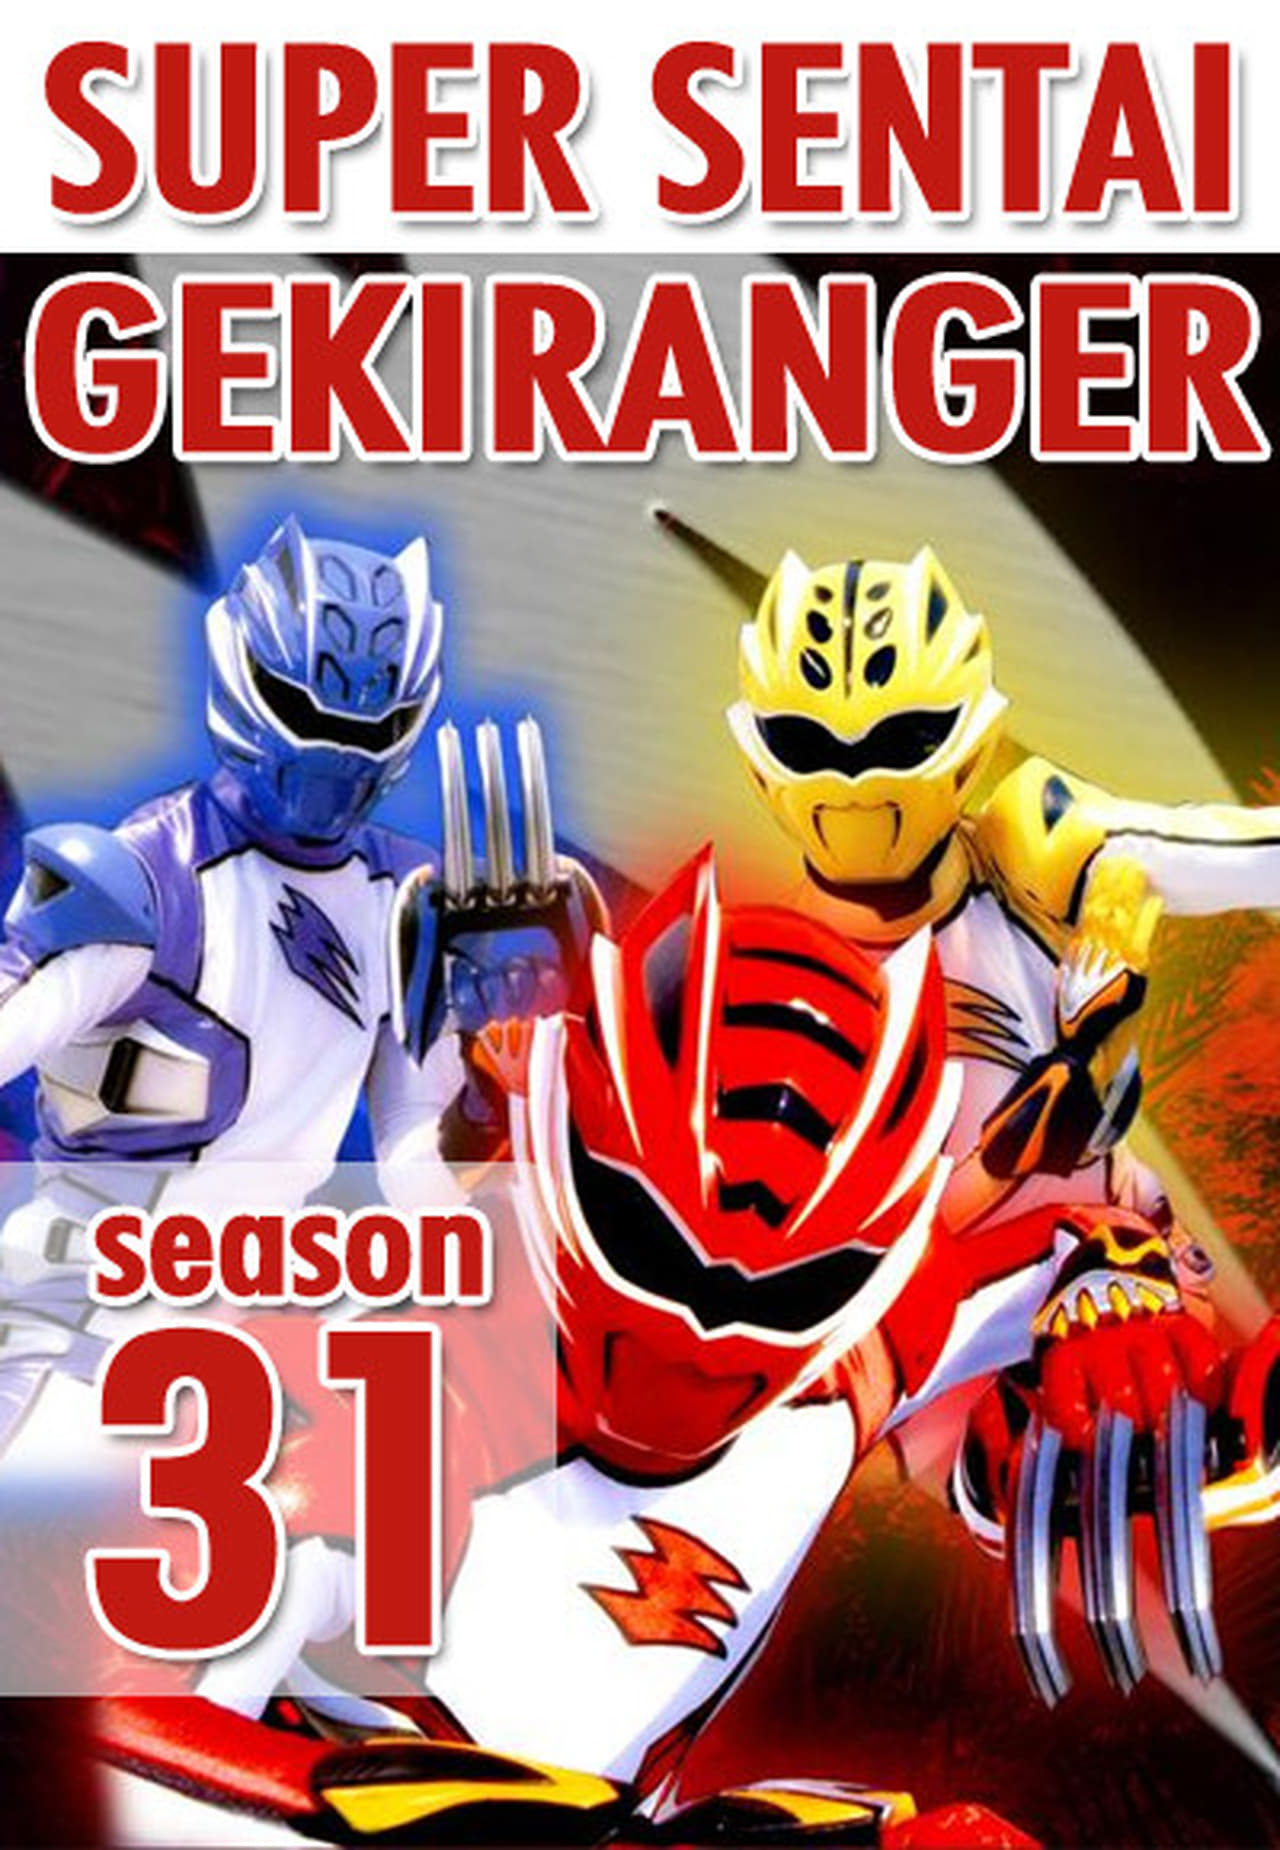 Putlocker Super Sentai Season 31 (2007)